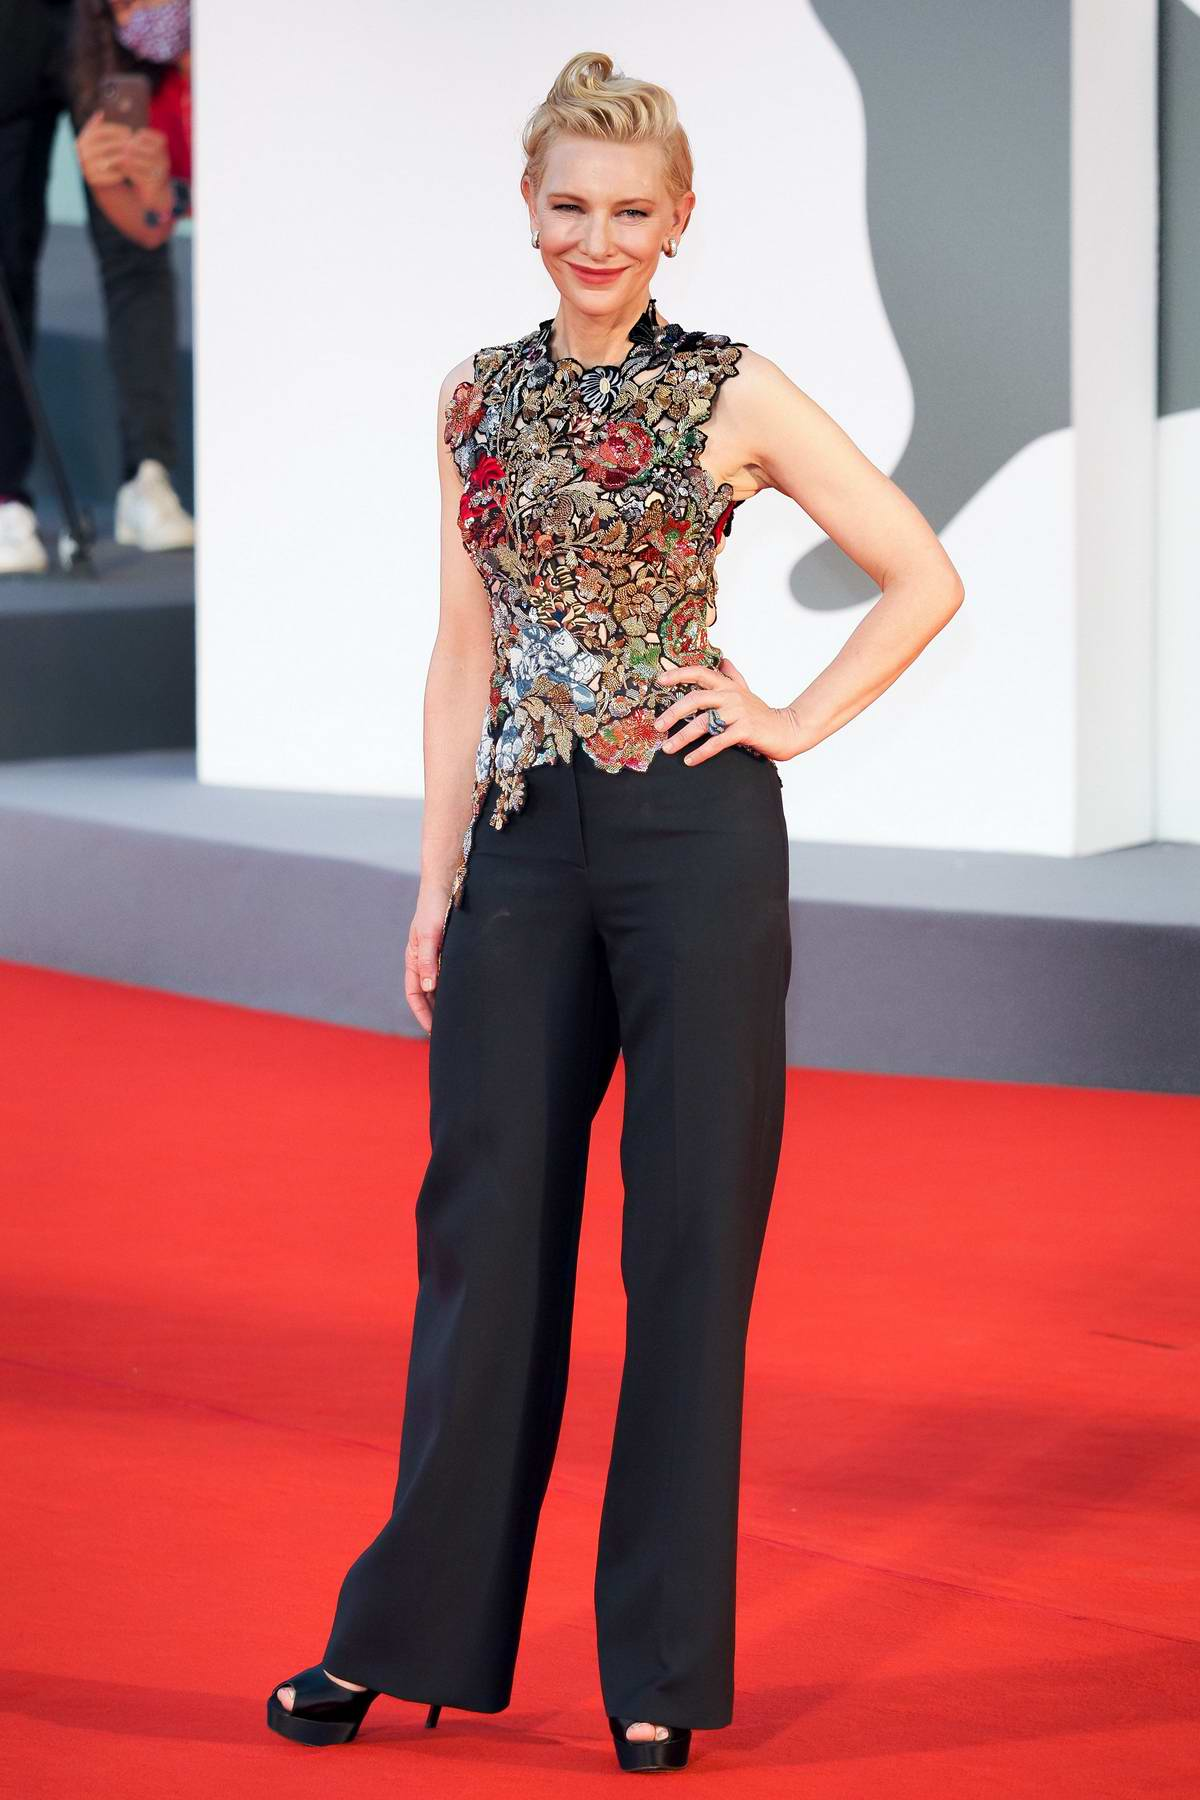 Cate Blanchett attends the Opening Ceremony and 'Lovers' Premiere during the 77th Venice Film Festival in Venice, Italy